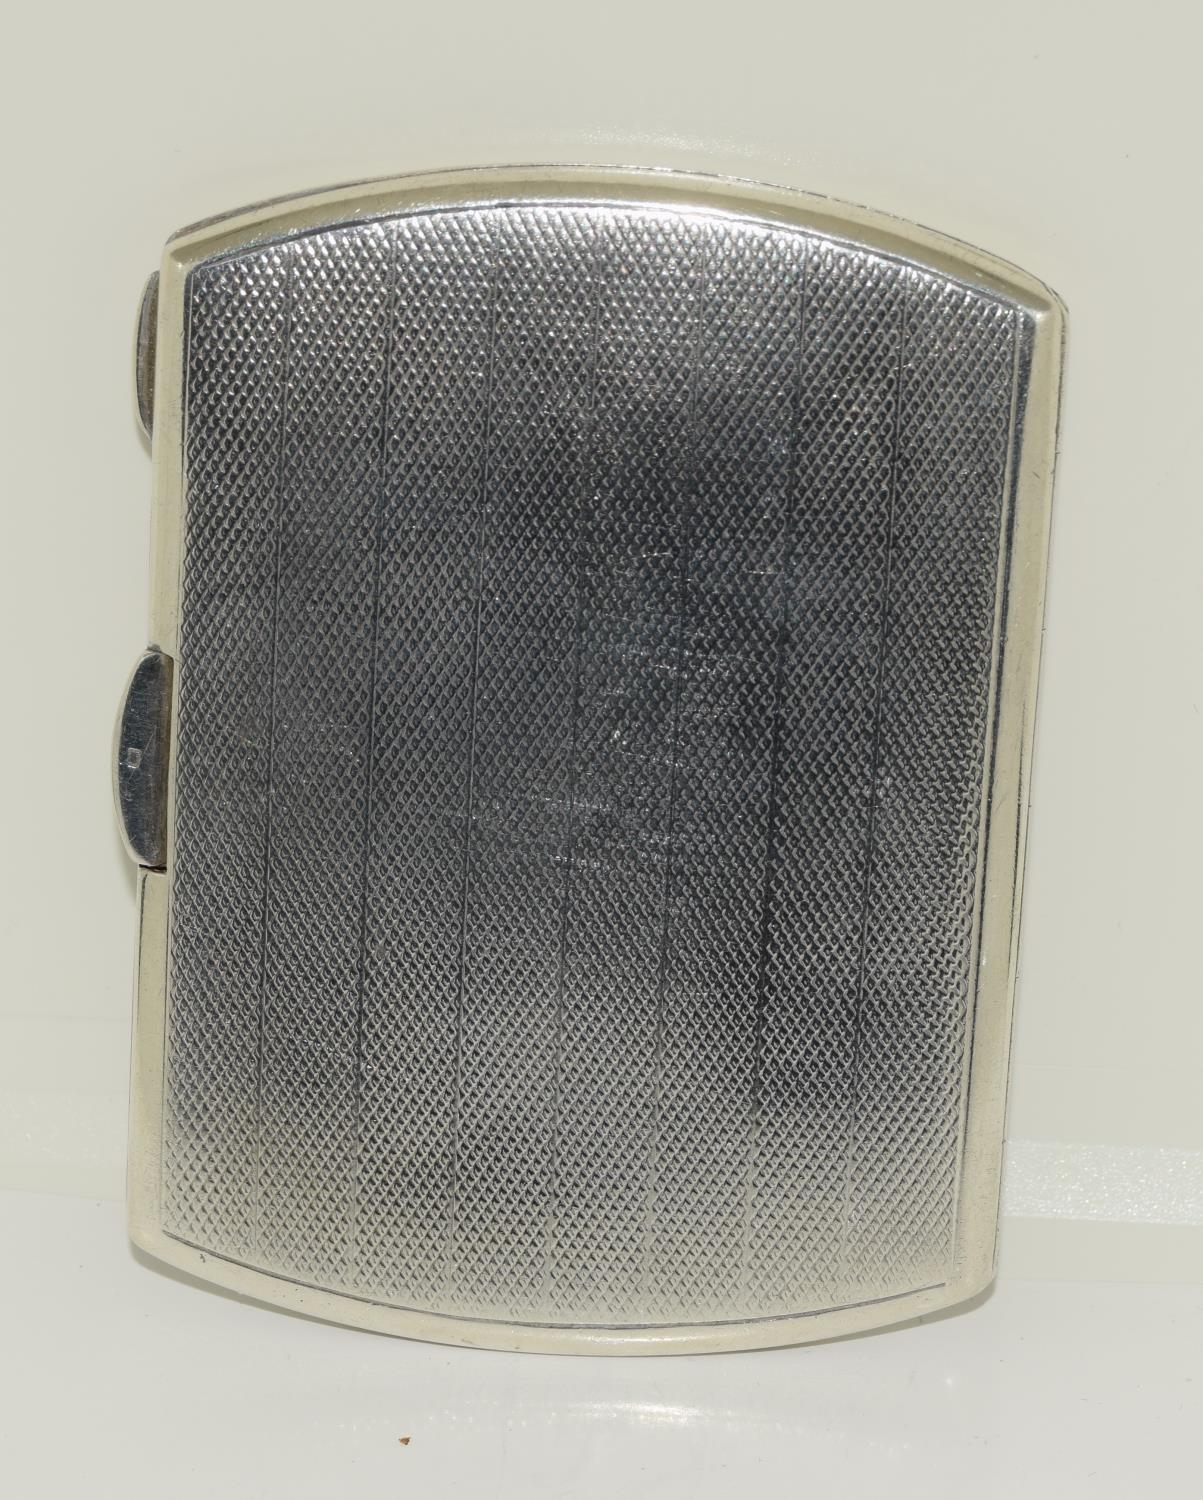 A silver case 1923 with semi nude enamel plaque. - Image 2 of 4